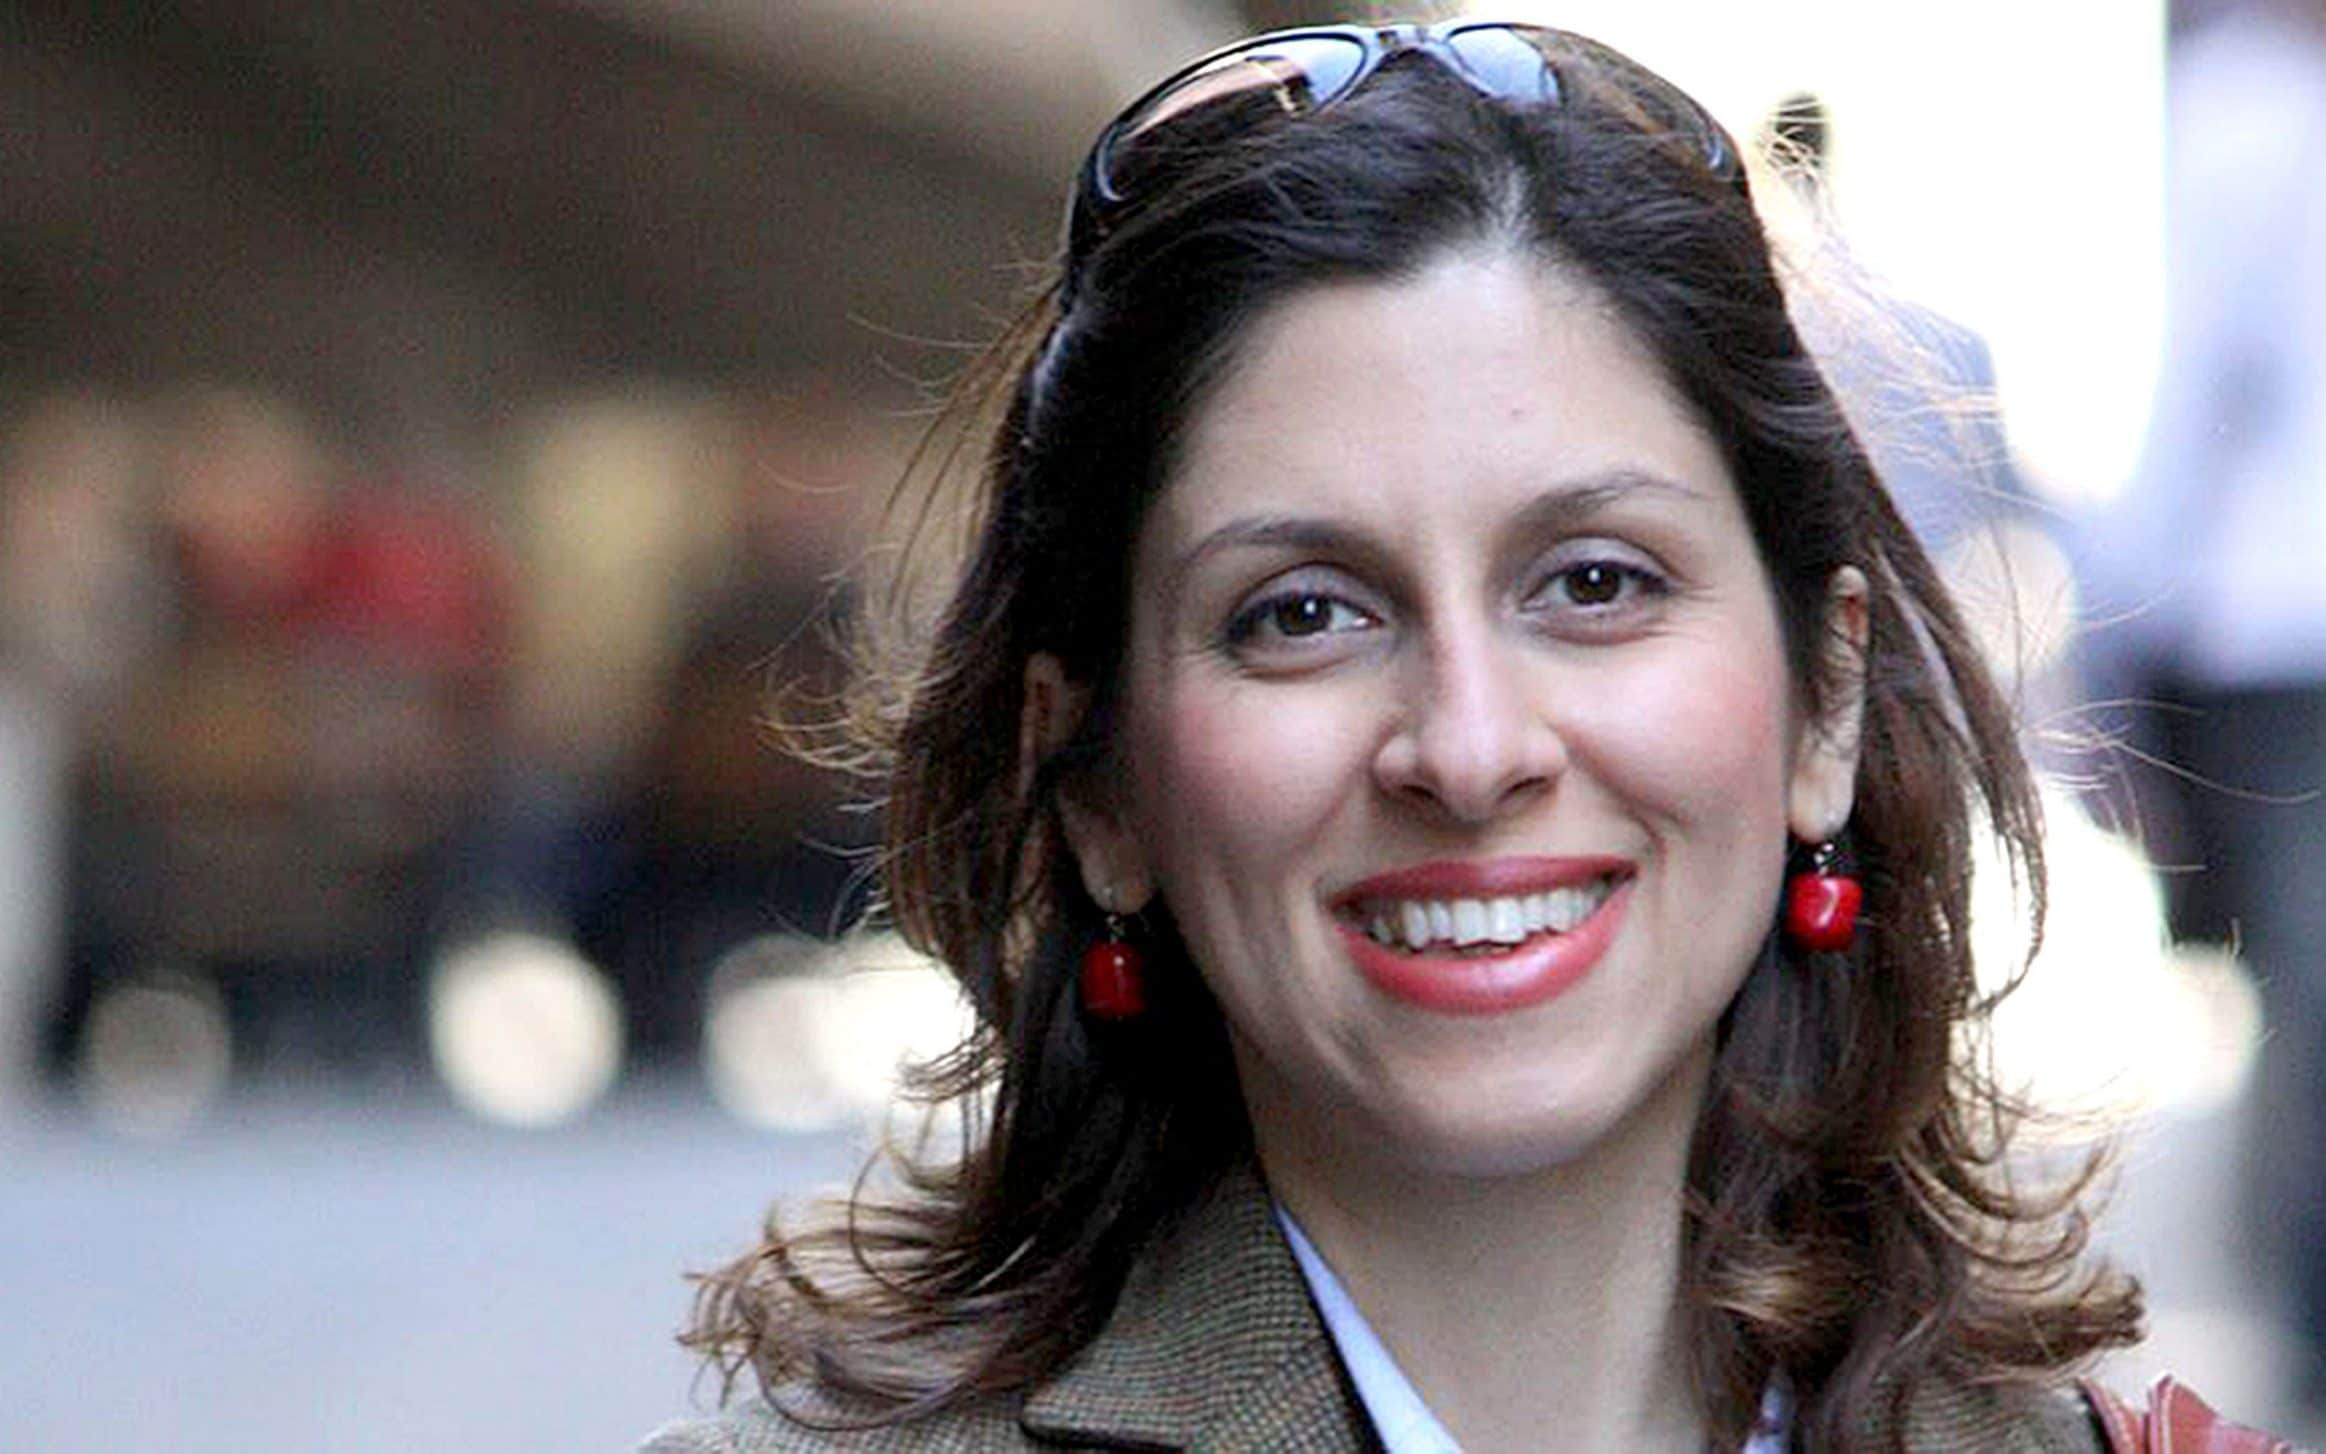 Nazanin Zaghari-Radcliffe transferred to hospital psychiatric  ward in Iran, says husband